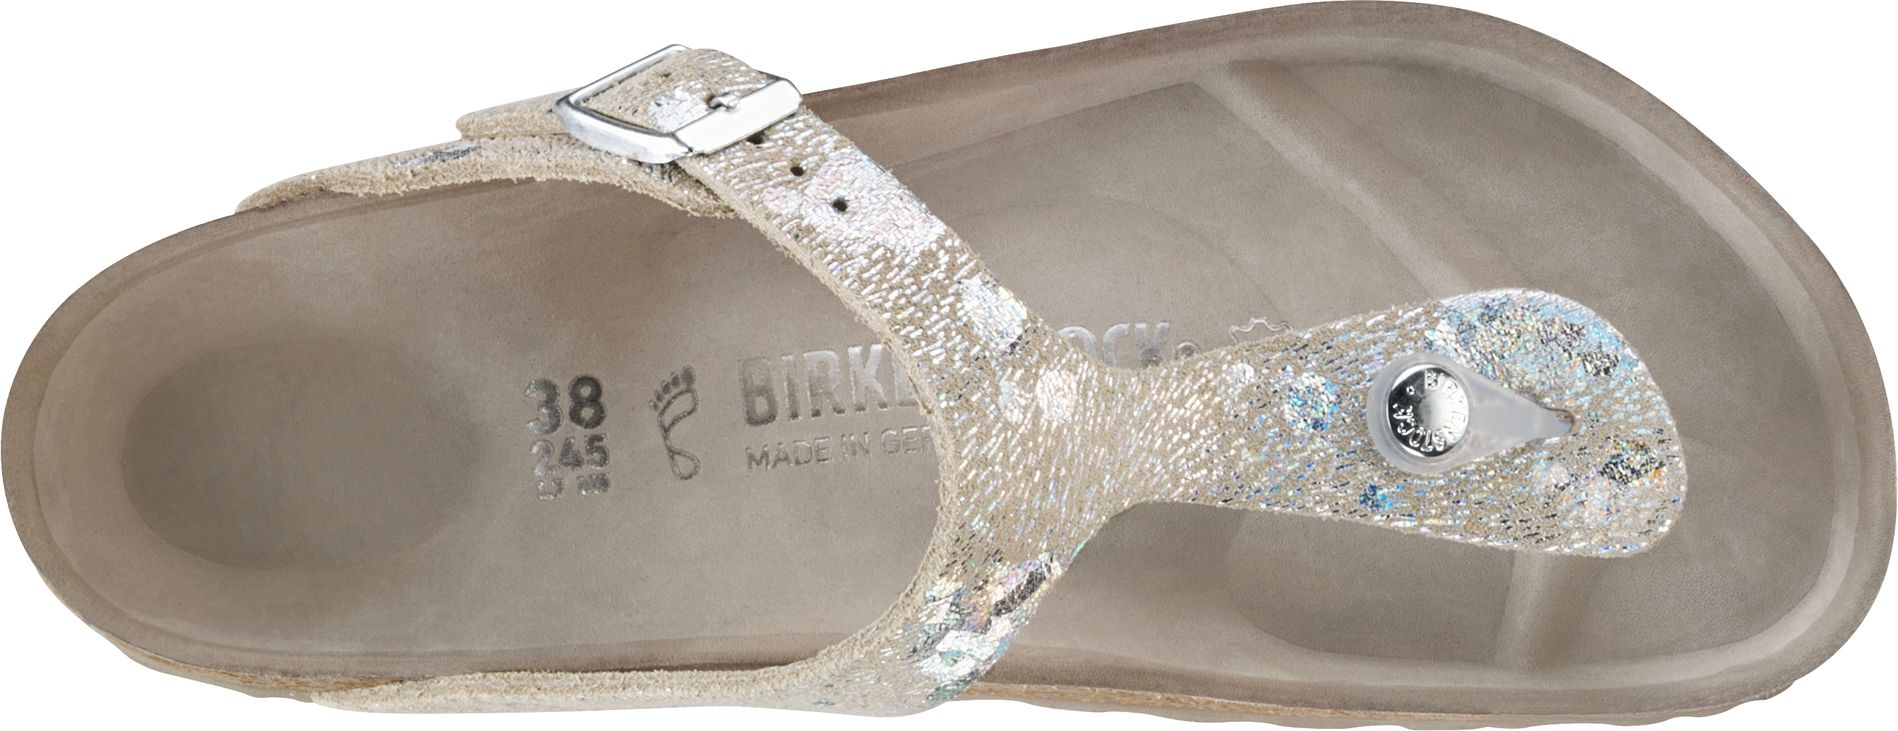 0207cc092cef ... Preview  Birkenstock Exquisit Gizeh Spotted Metallic Silver ...